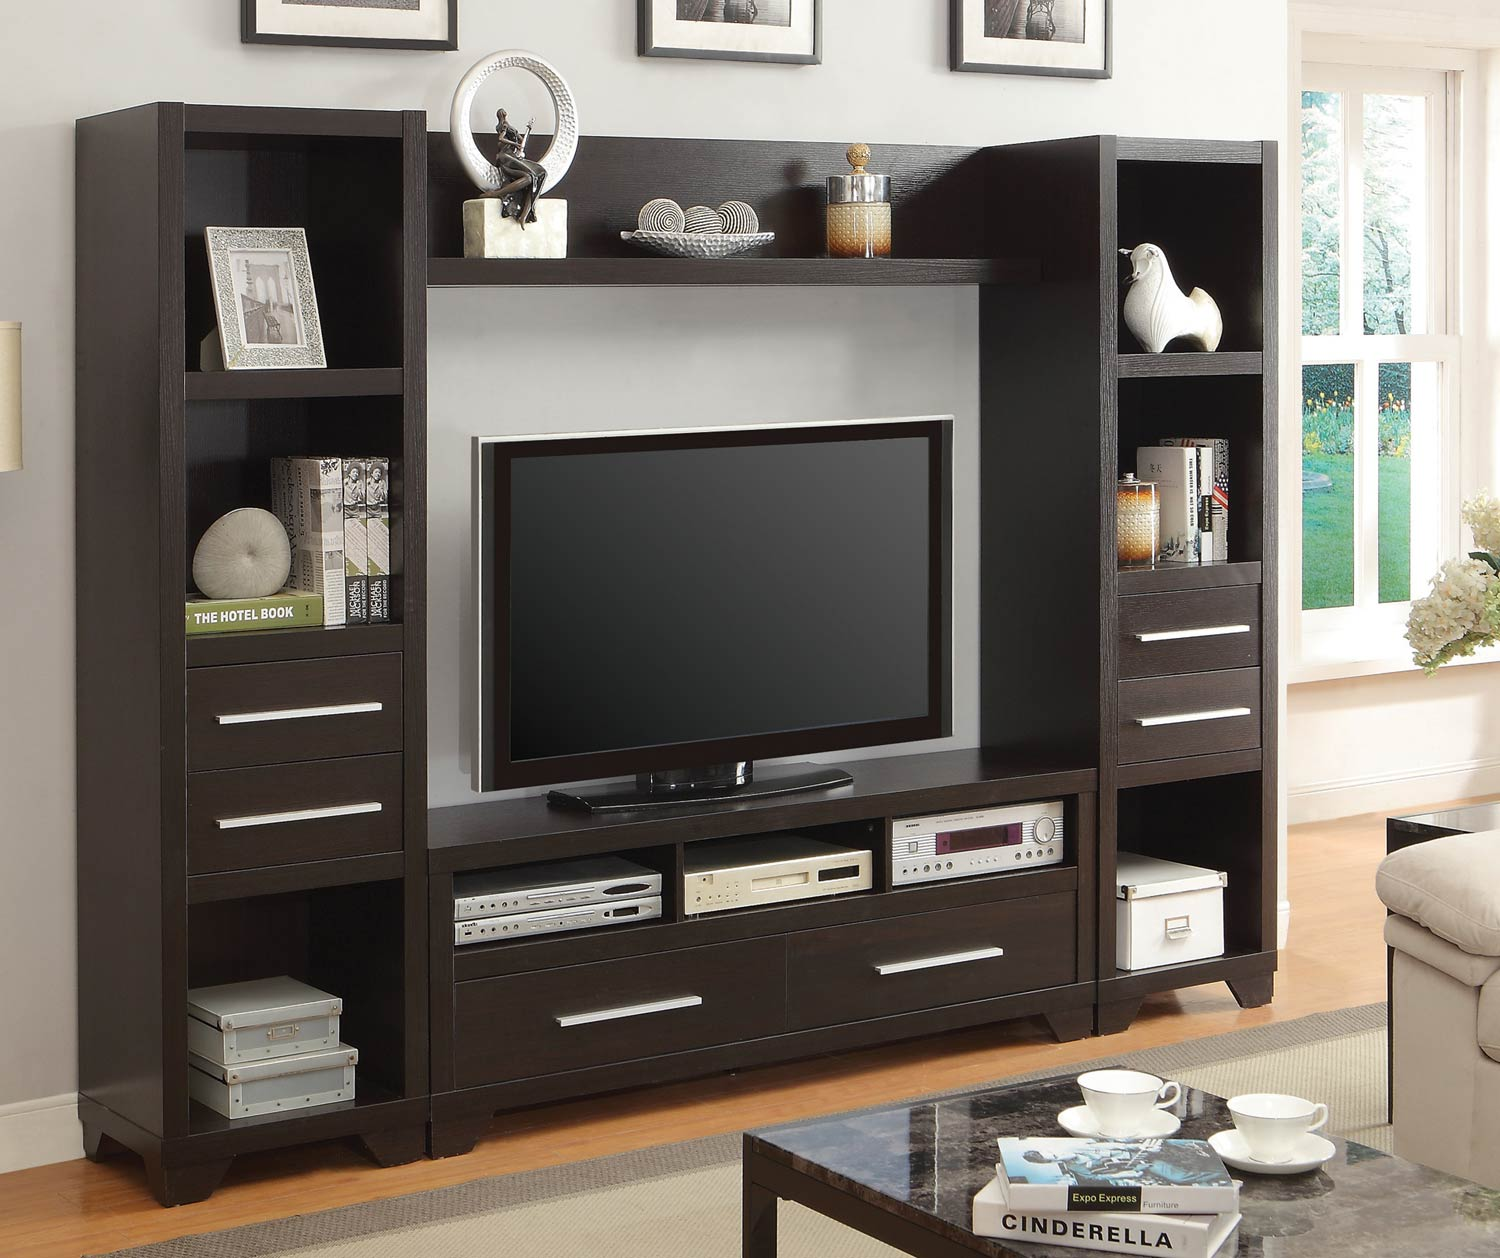 Coaster 703301 Entertainment Wall Unit - Cappuccino